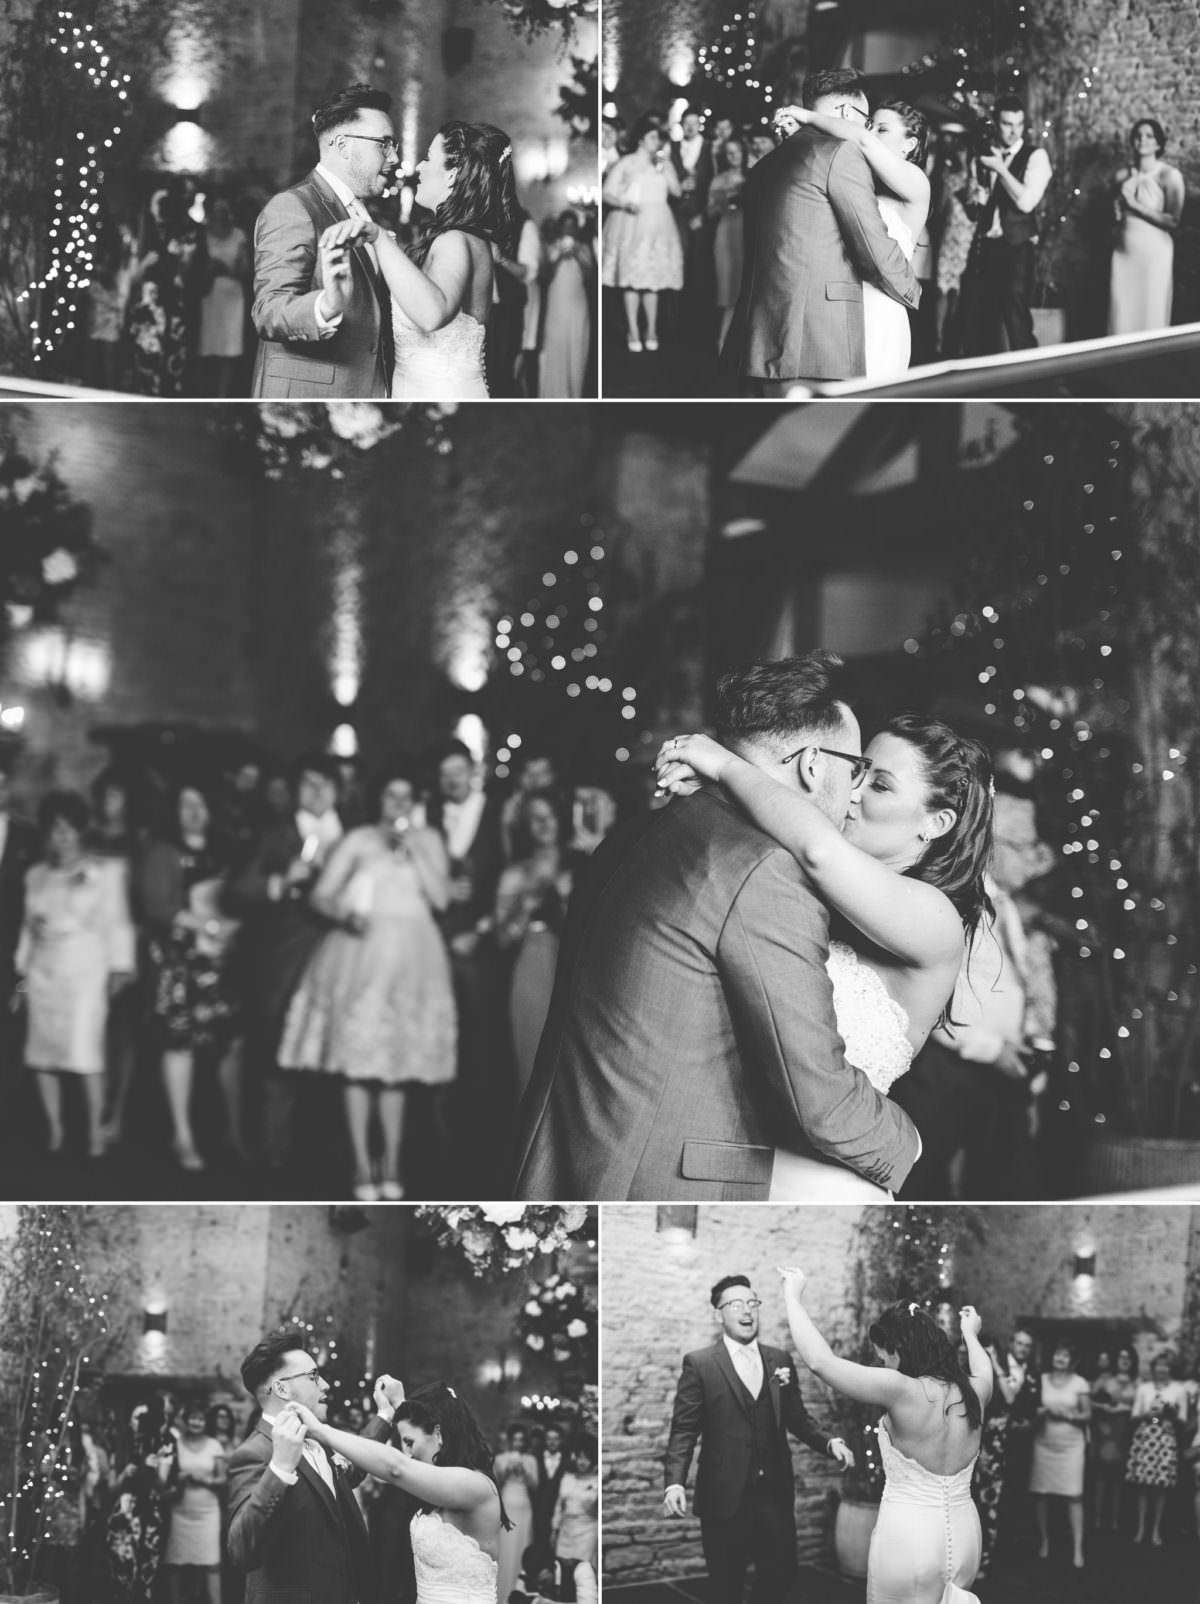 cripps_barn_gloucesterhsire_welsh_wedding_photographer_rachel_lambert_photography_jordan_amy_ 134